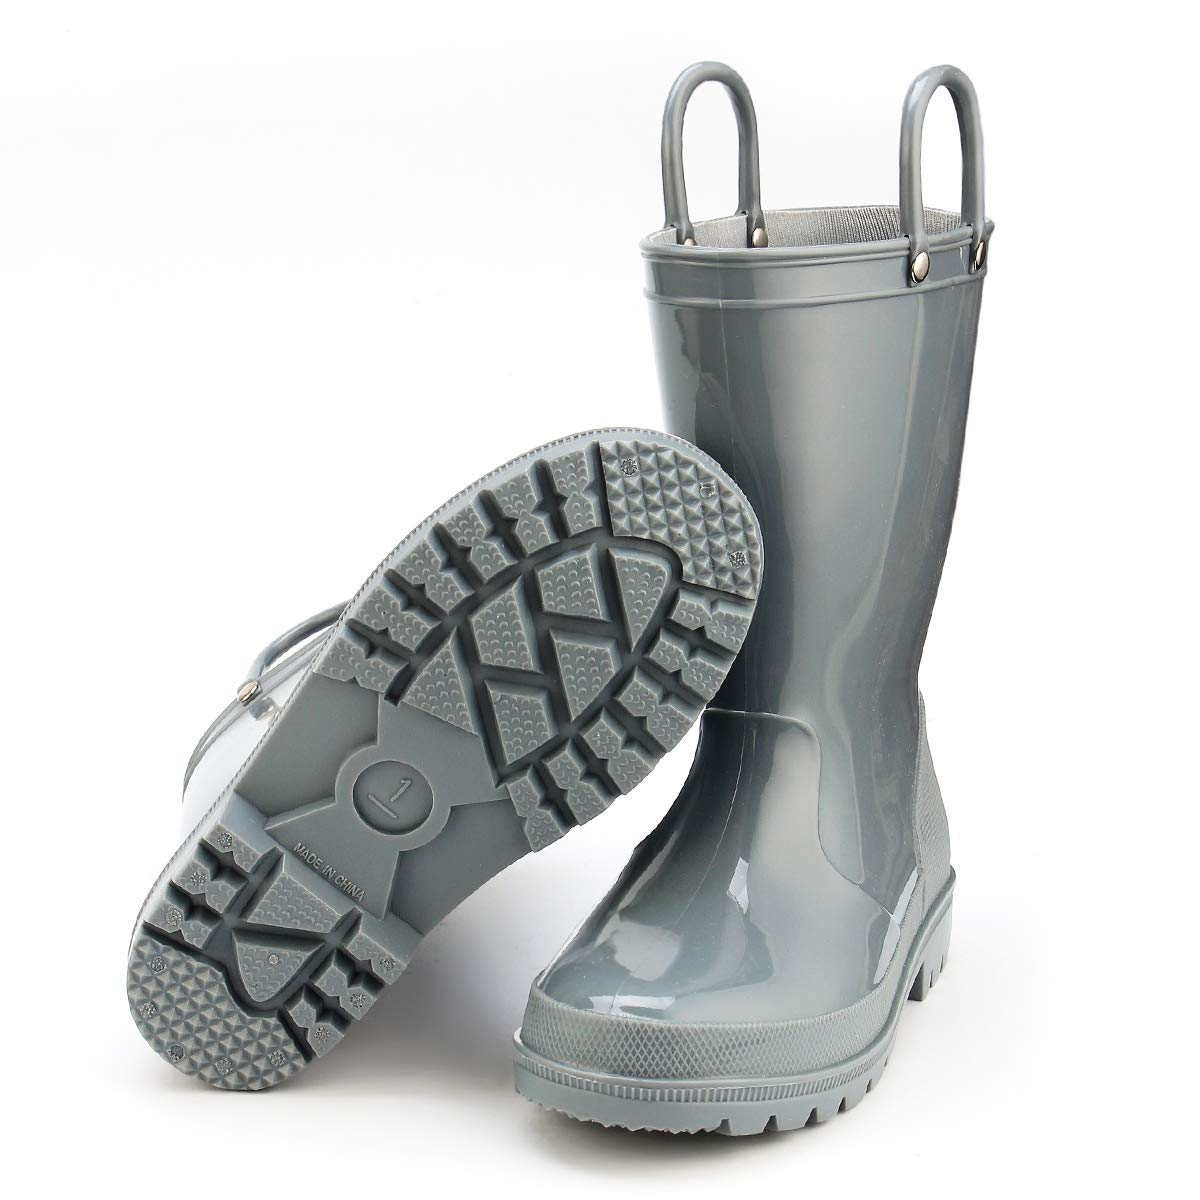 KomForme Kids Rain Boots, Environmental Material Boots with Memory Foam Insole and Easy-on Handles Grey by KKomForme (Image #4)